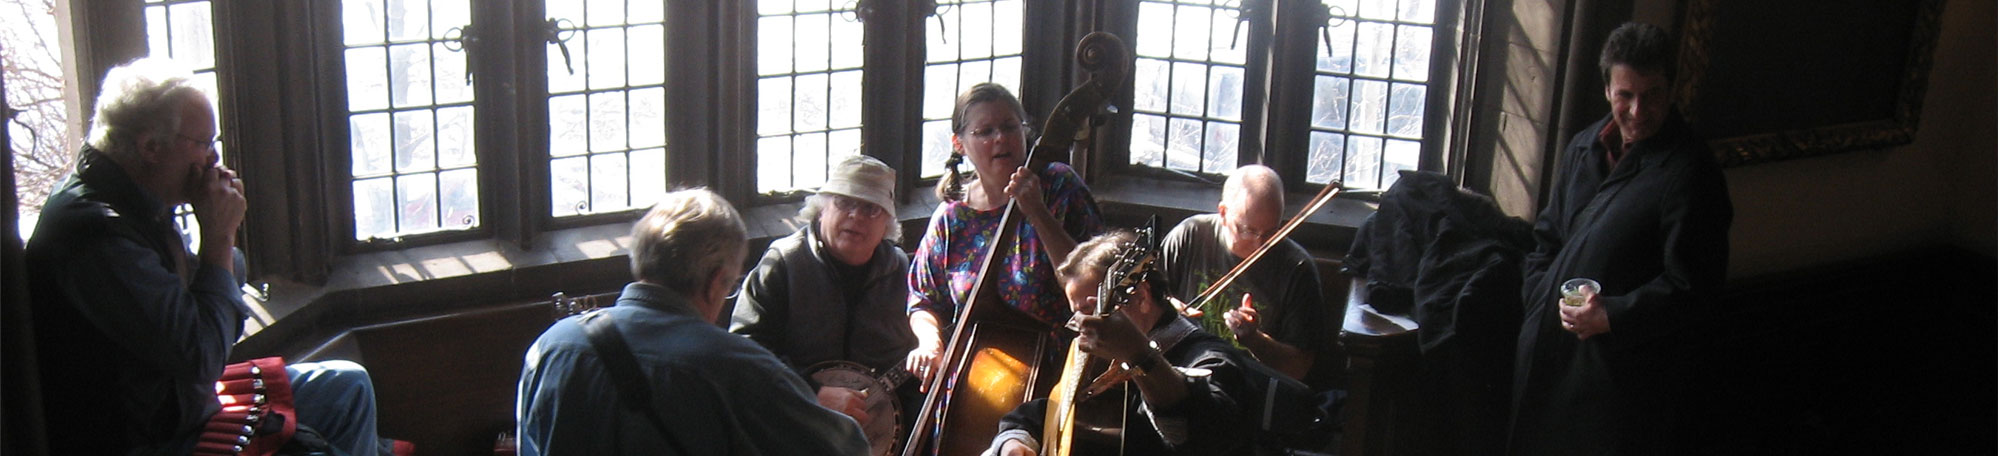 Festival attendees jam at Ida Noyes Hall during the 2008 University of Chicago Folk Festival